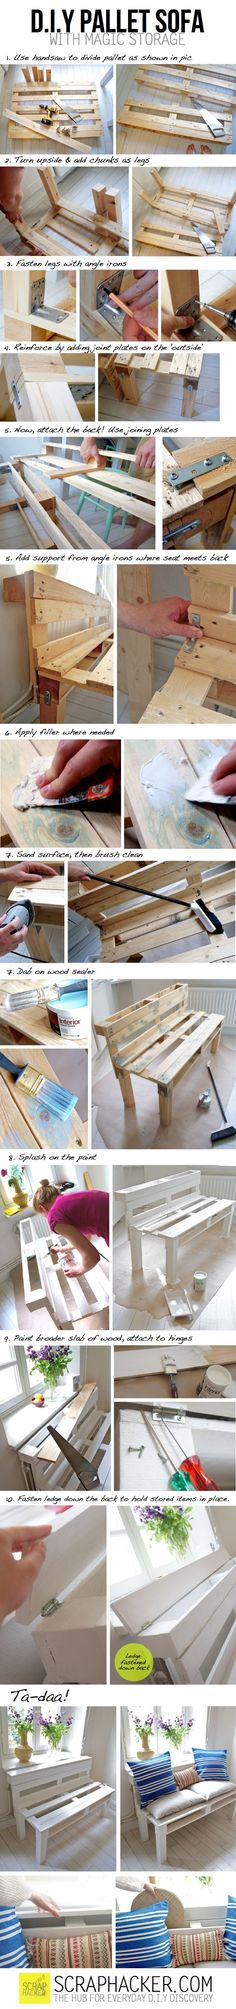 DIY Upcycle Pallet Project: Pallet Sofa. How to build it! To add seating to dinning table for more kiddos: